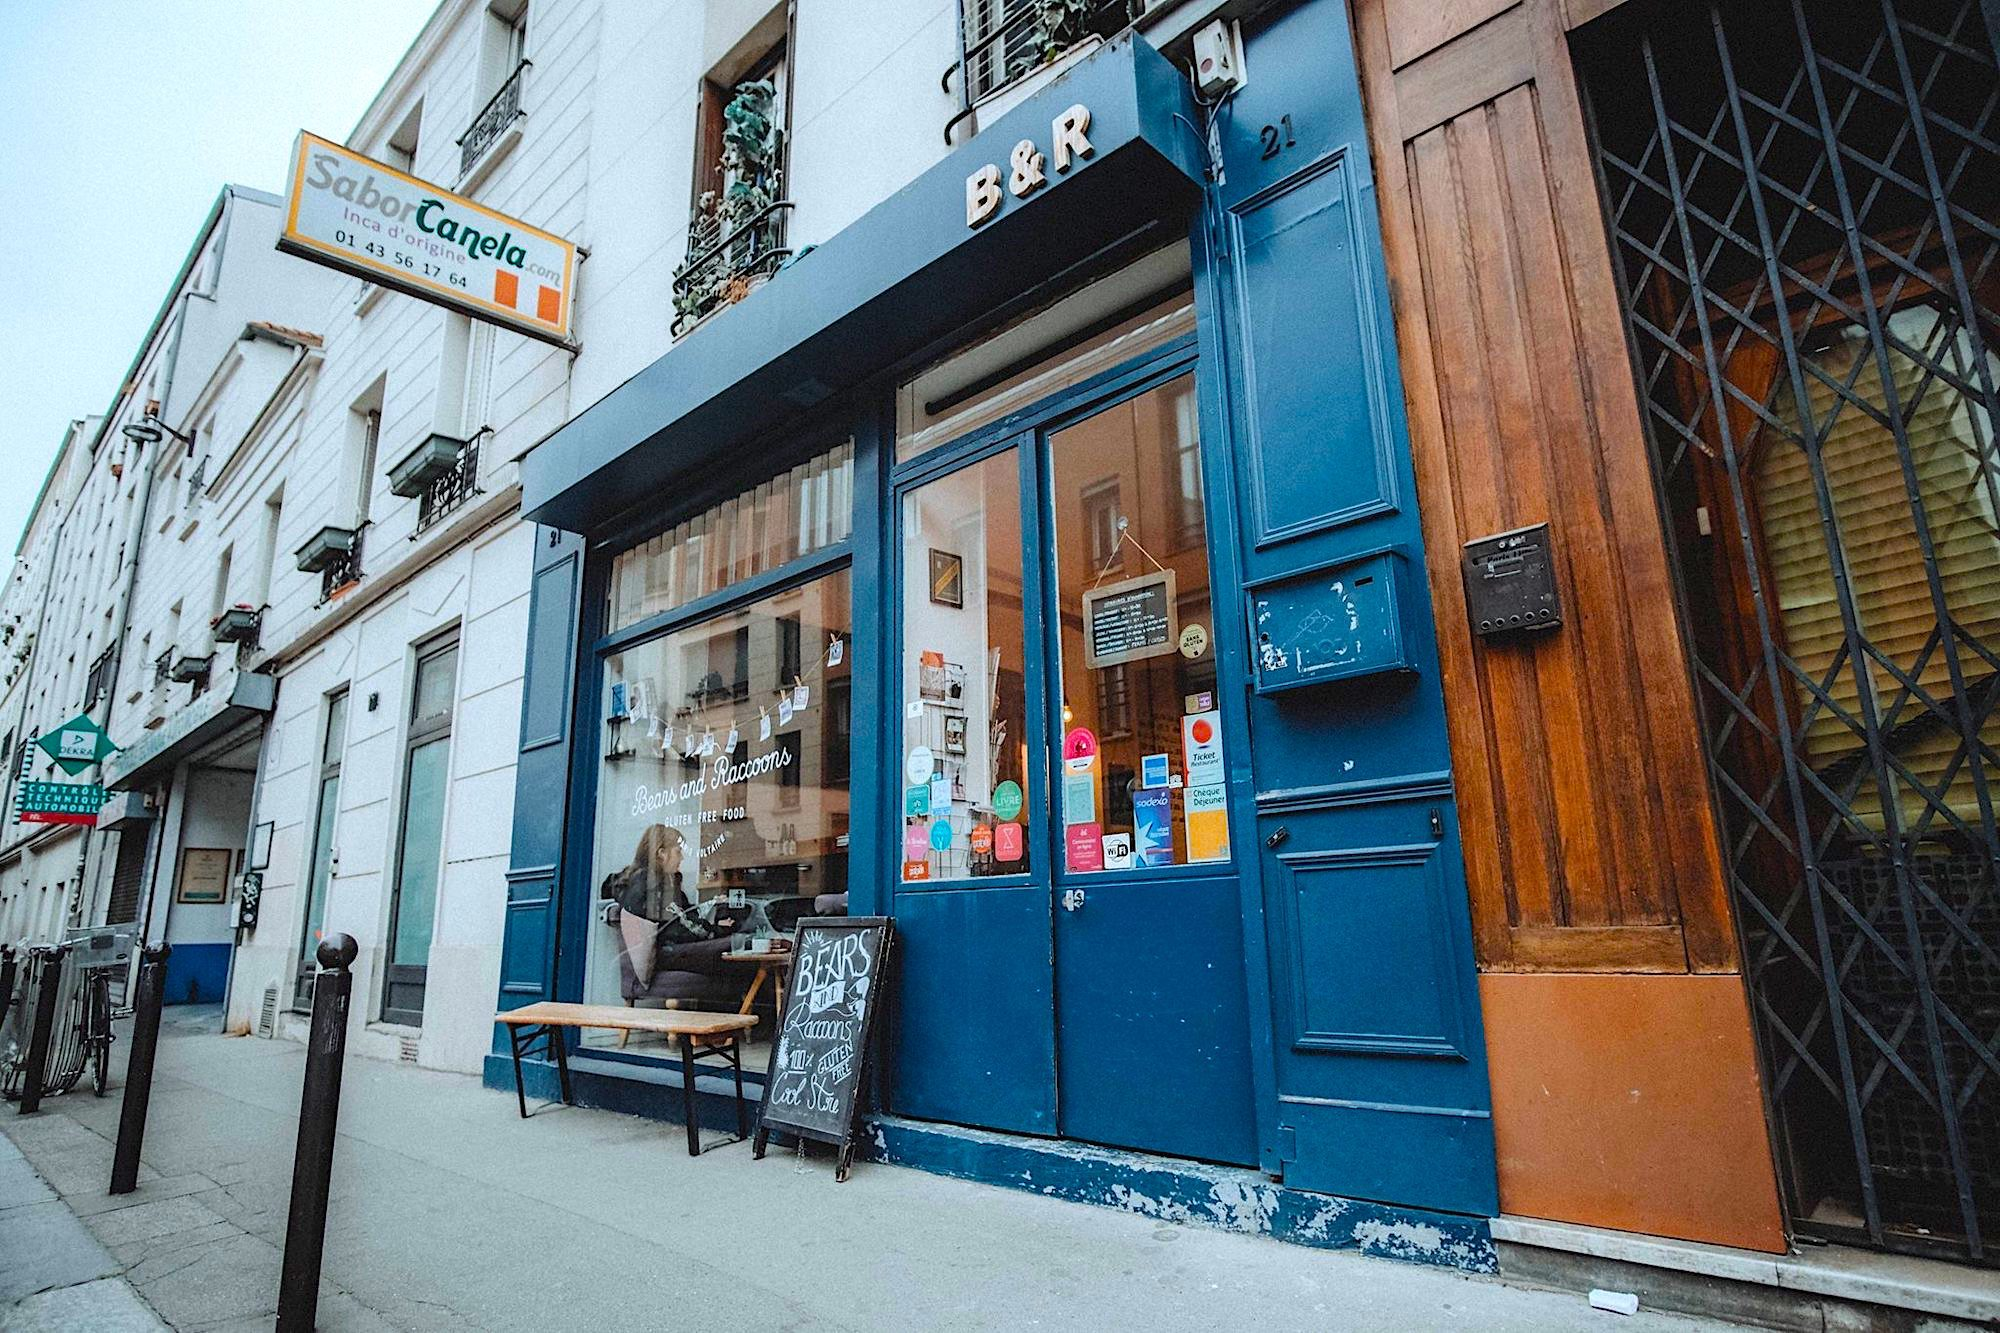 Outside Bears and Racoons gluten-free restaurant in Paris and its blue shop front.